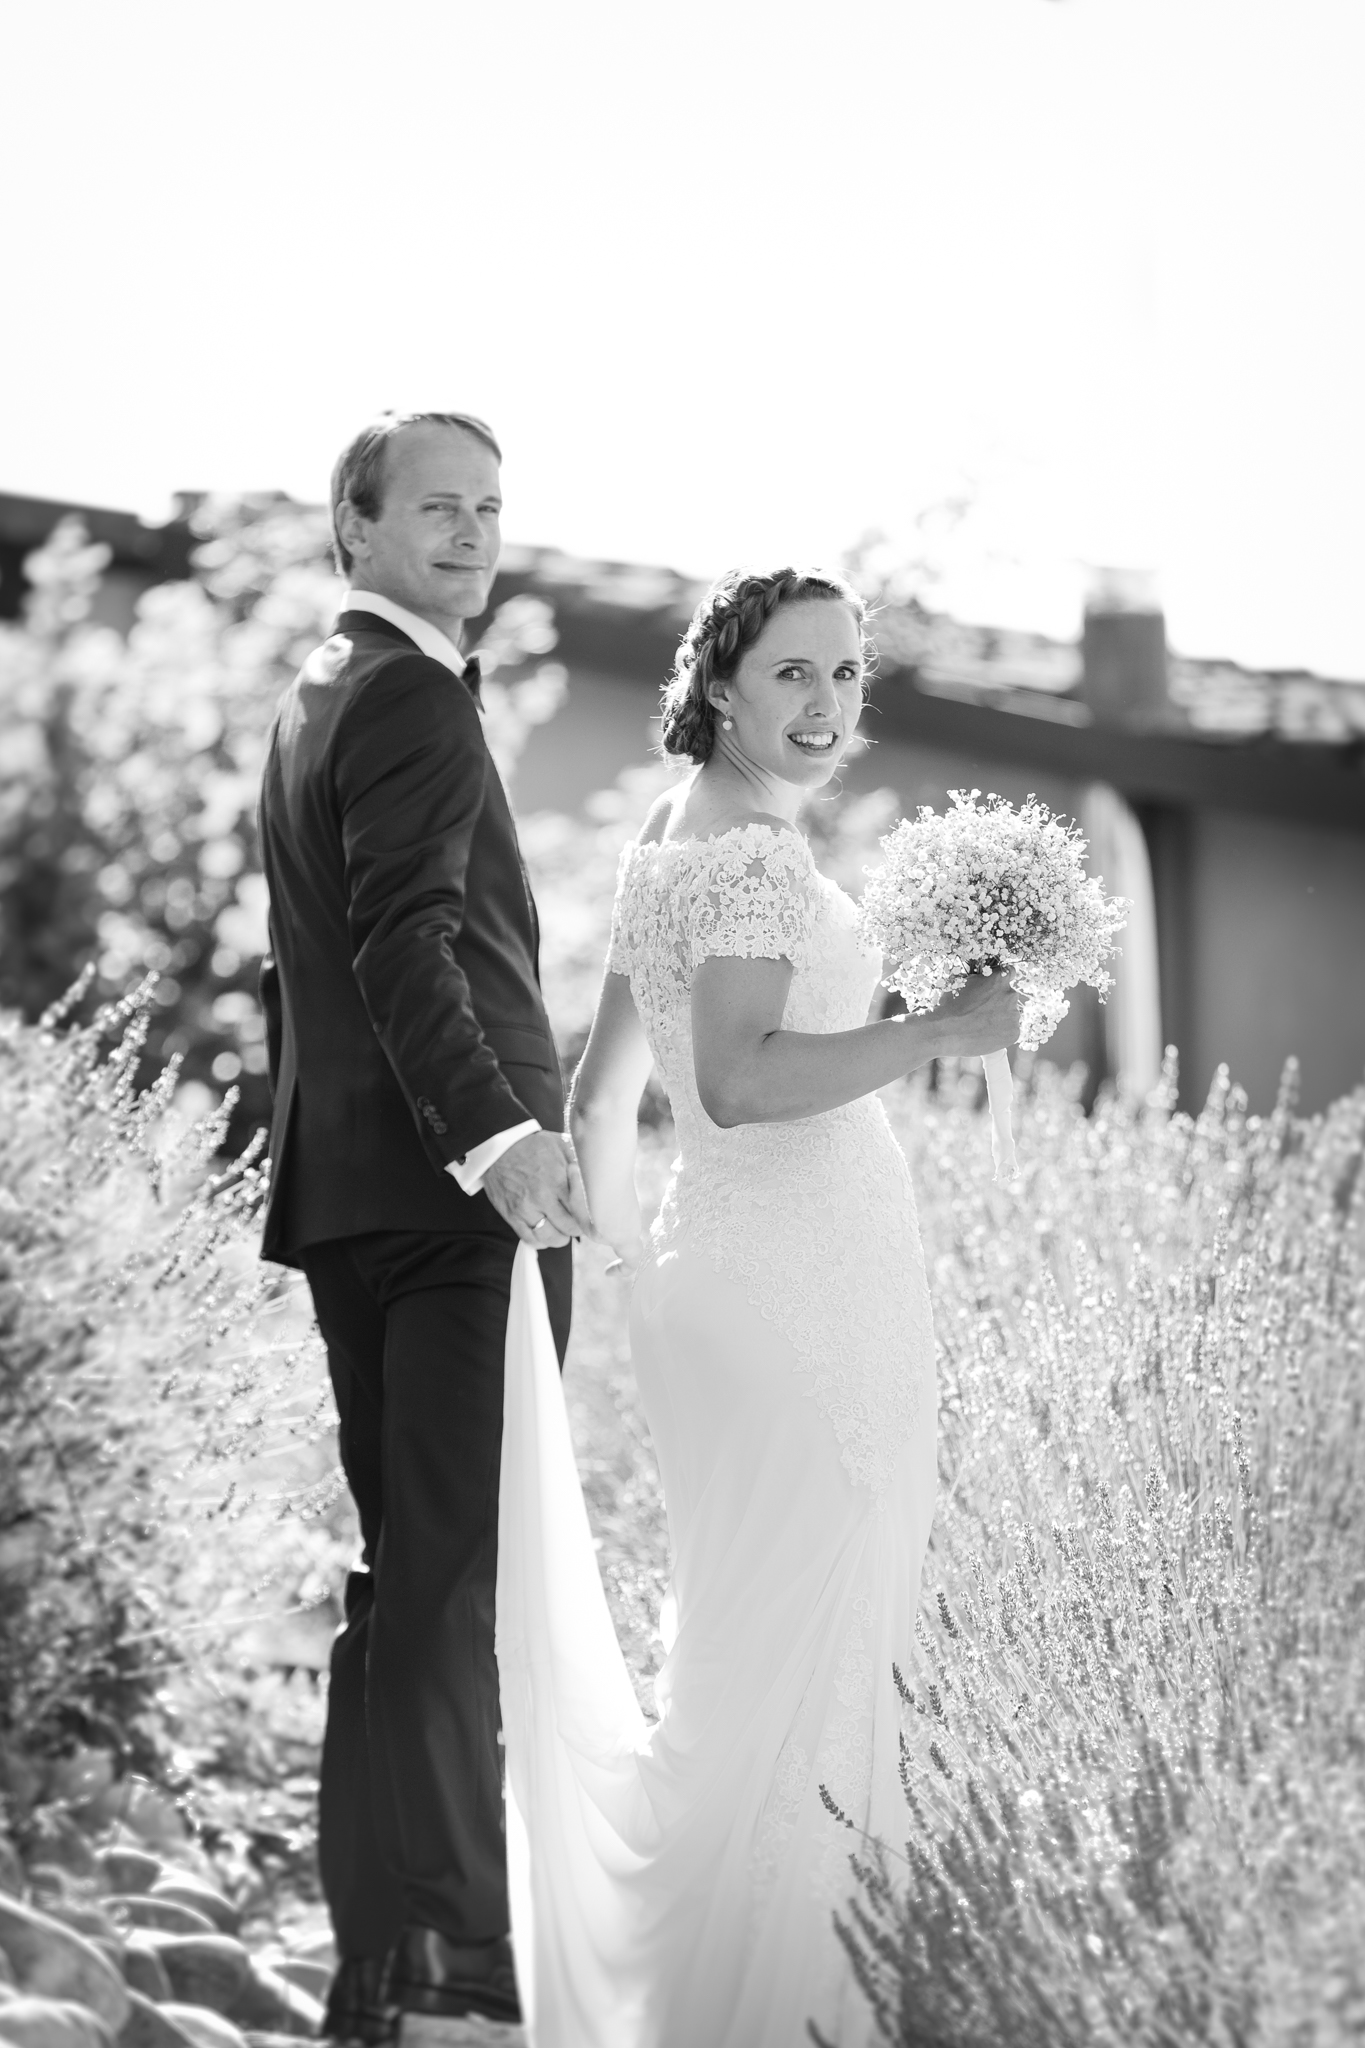 Cathrine+Andreas_Bryllup-116